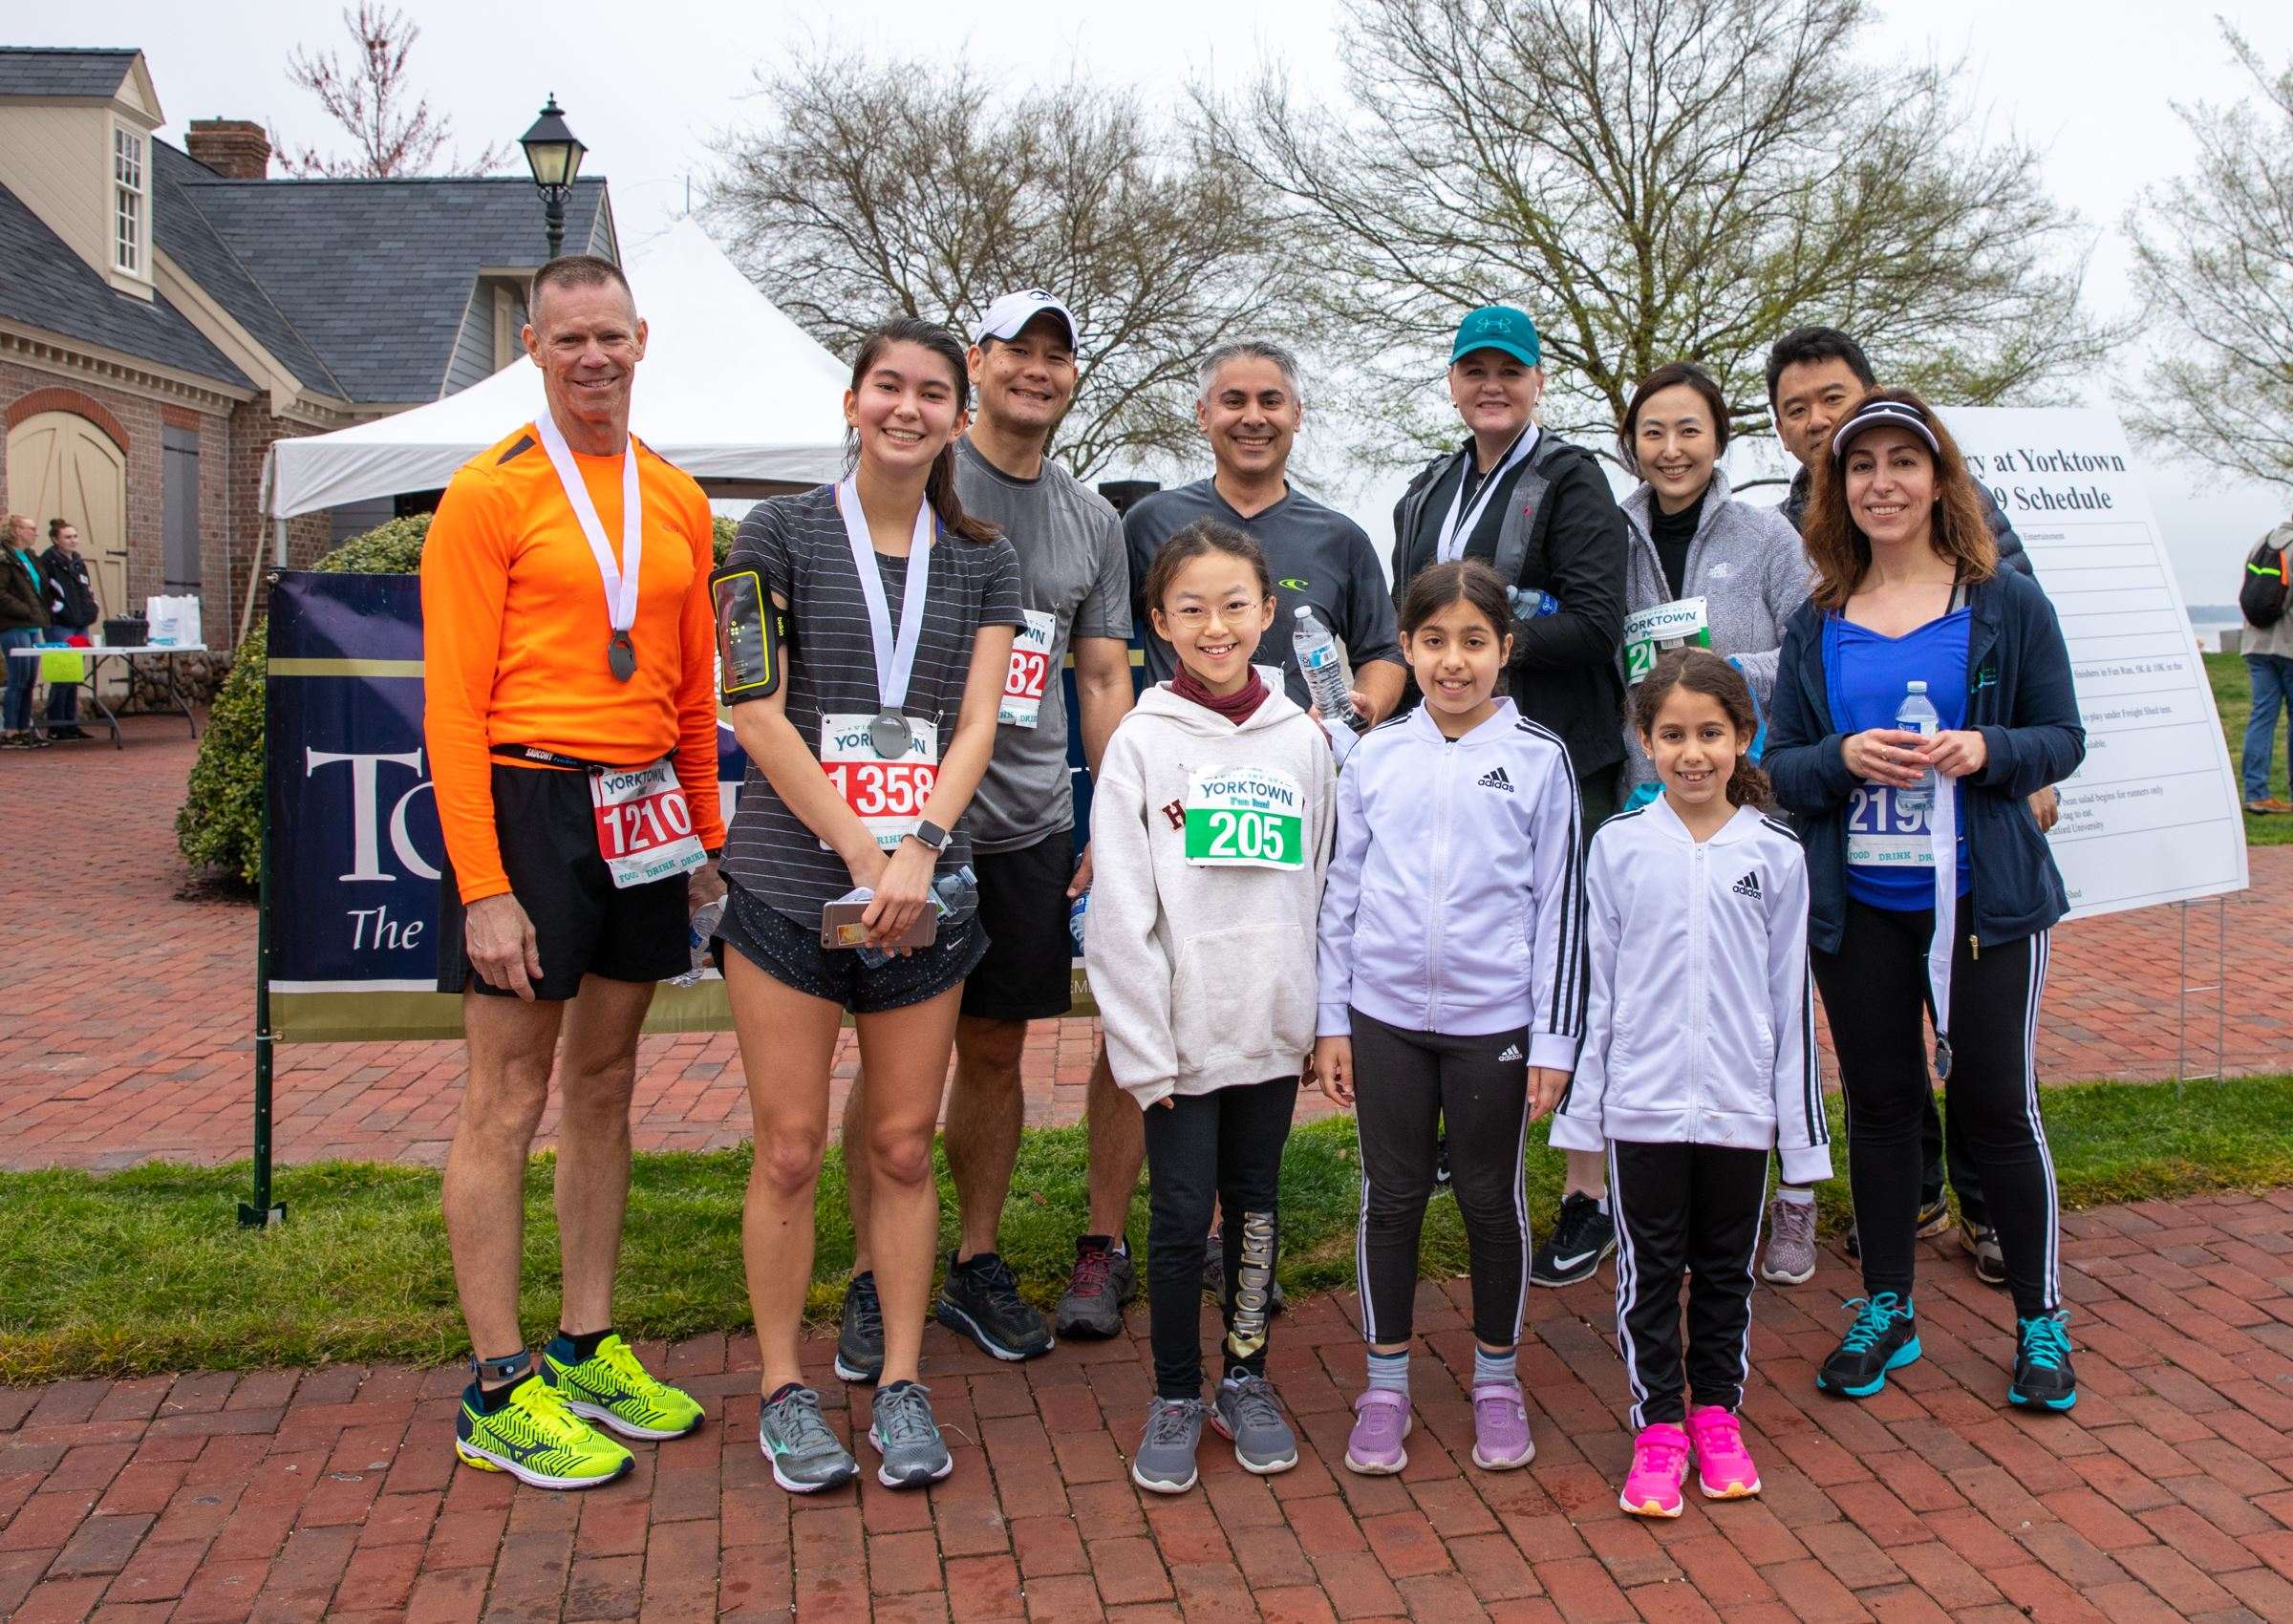 Family posing together after Victory at Yorktown Race